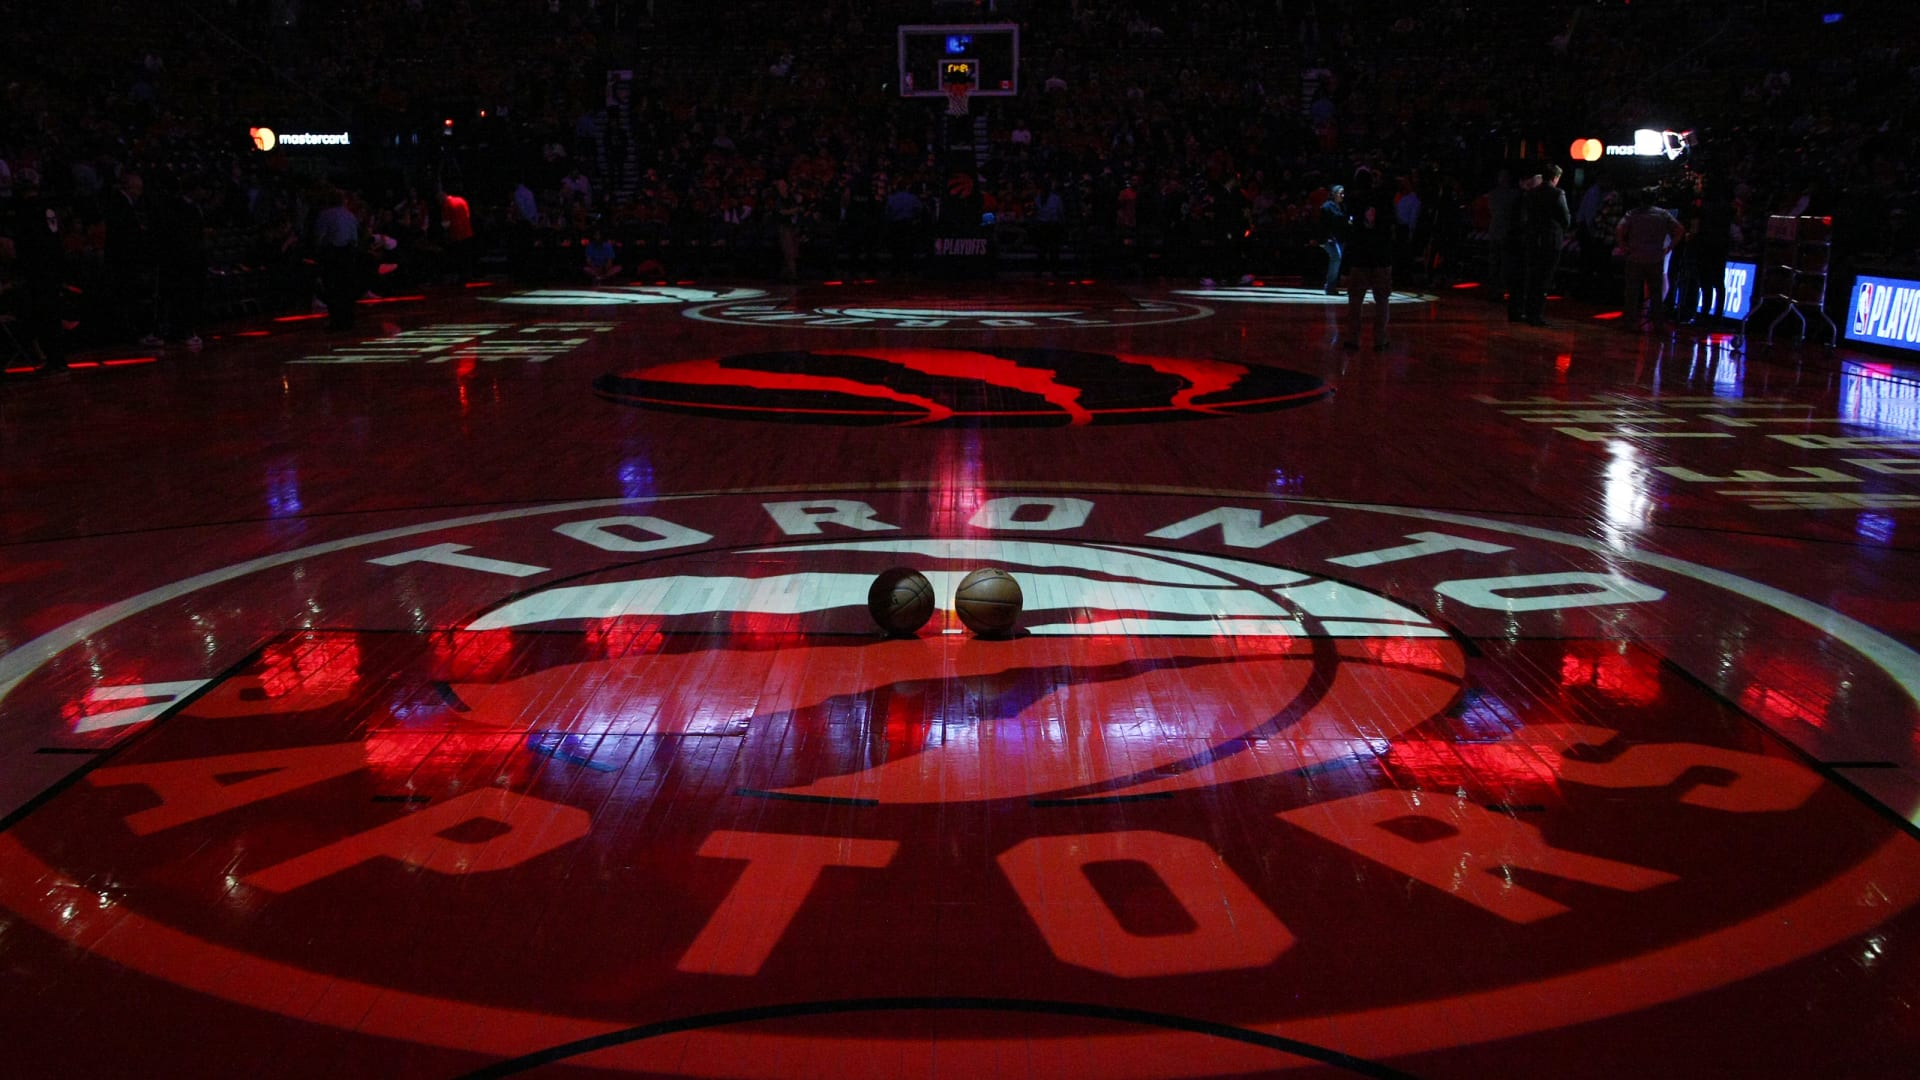 Alternatives to replace Home-Court Advantage for Toronto Raptors